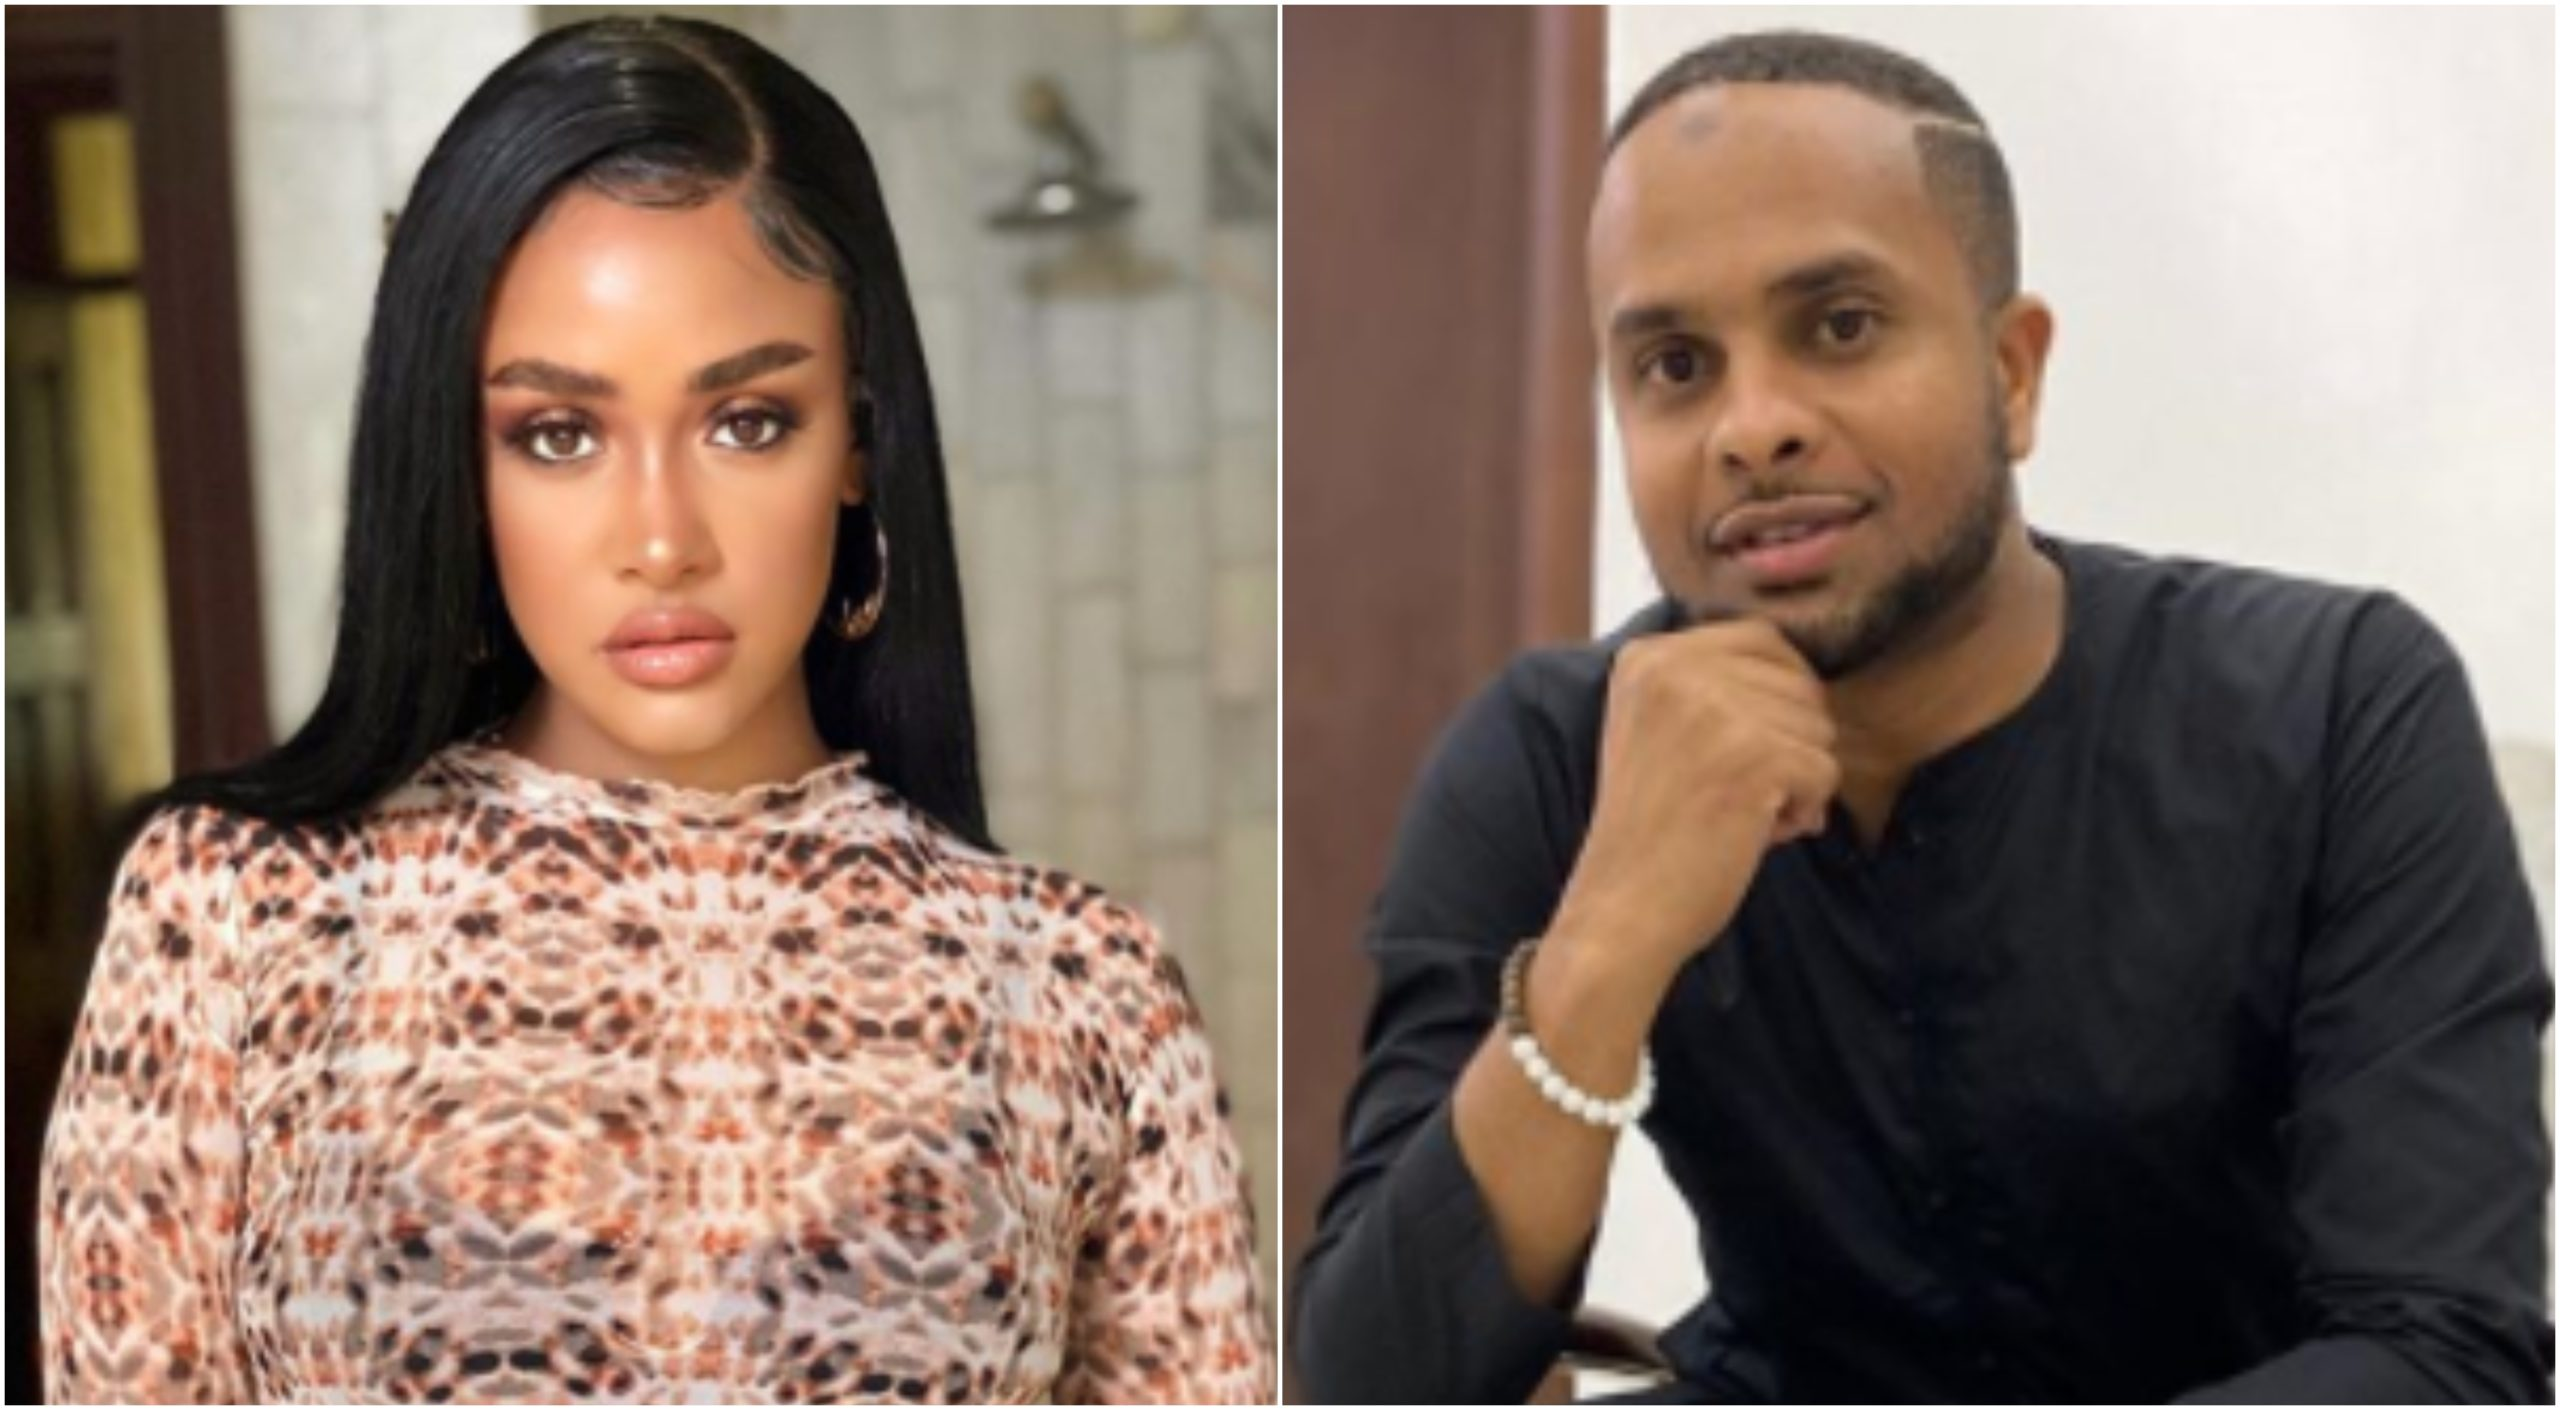 Tanasha Donna spills the beans on her relationship with Jamal Gaddafi